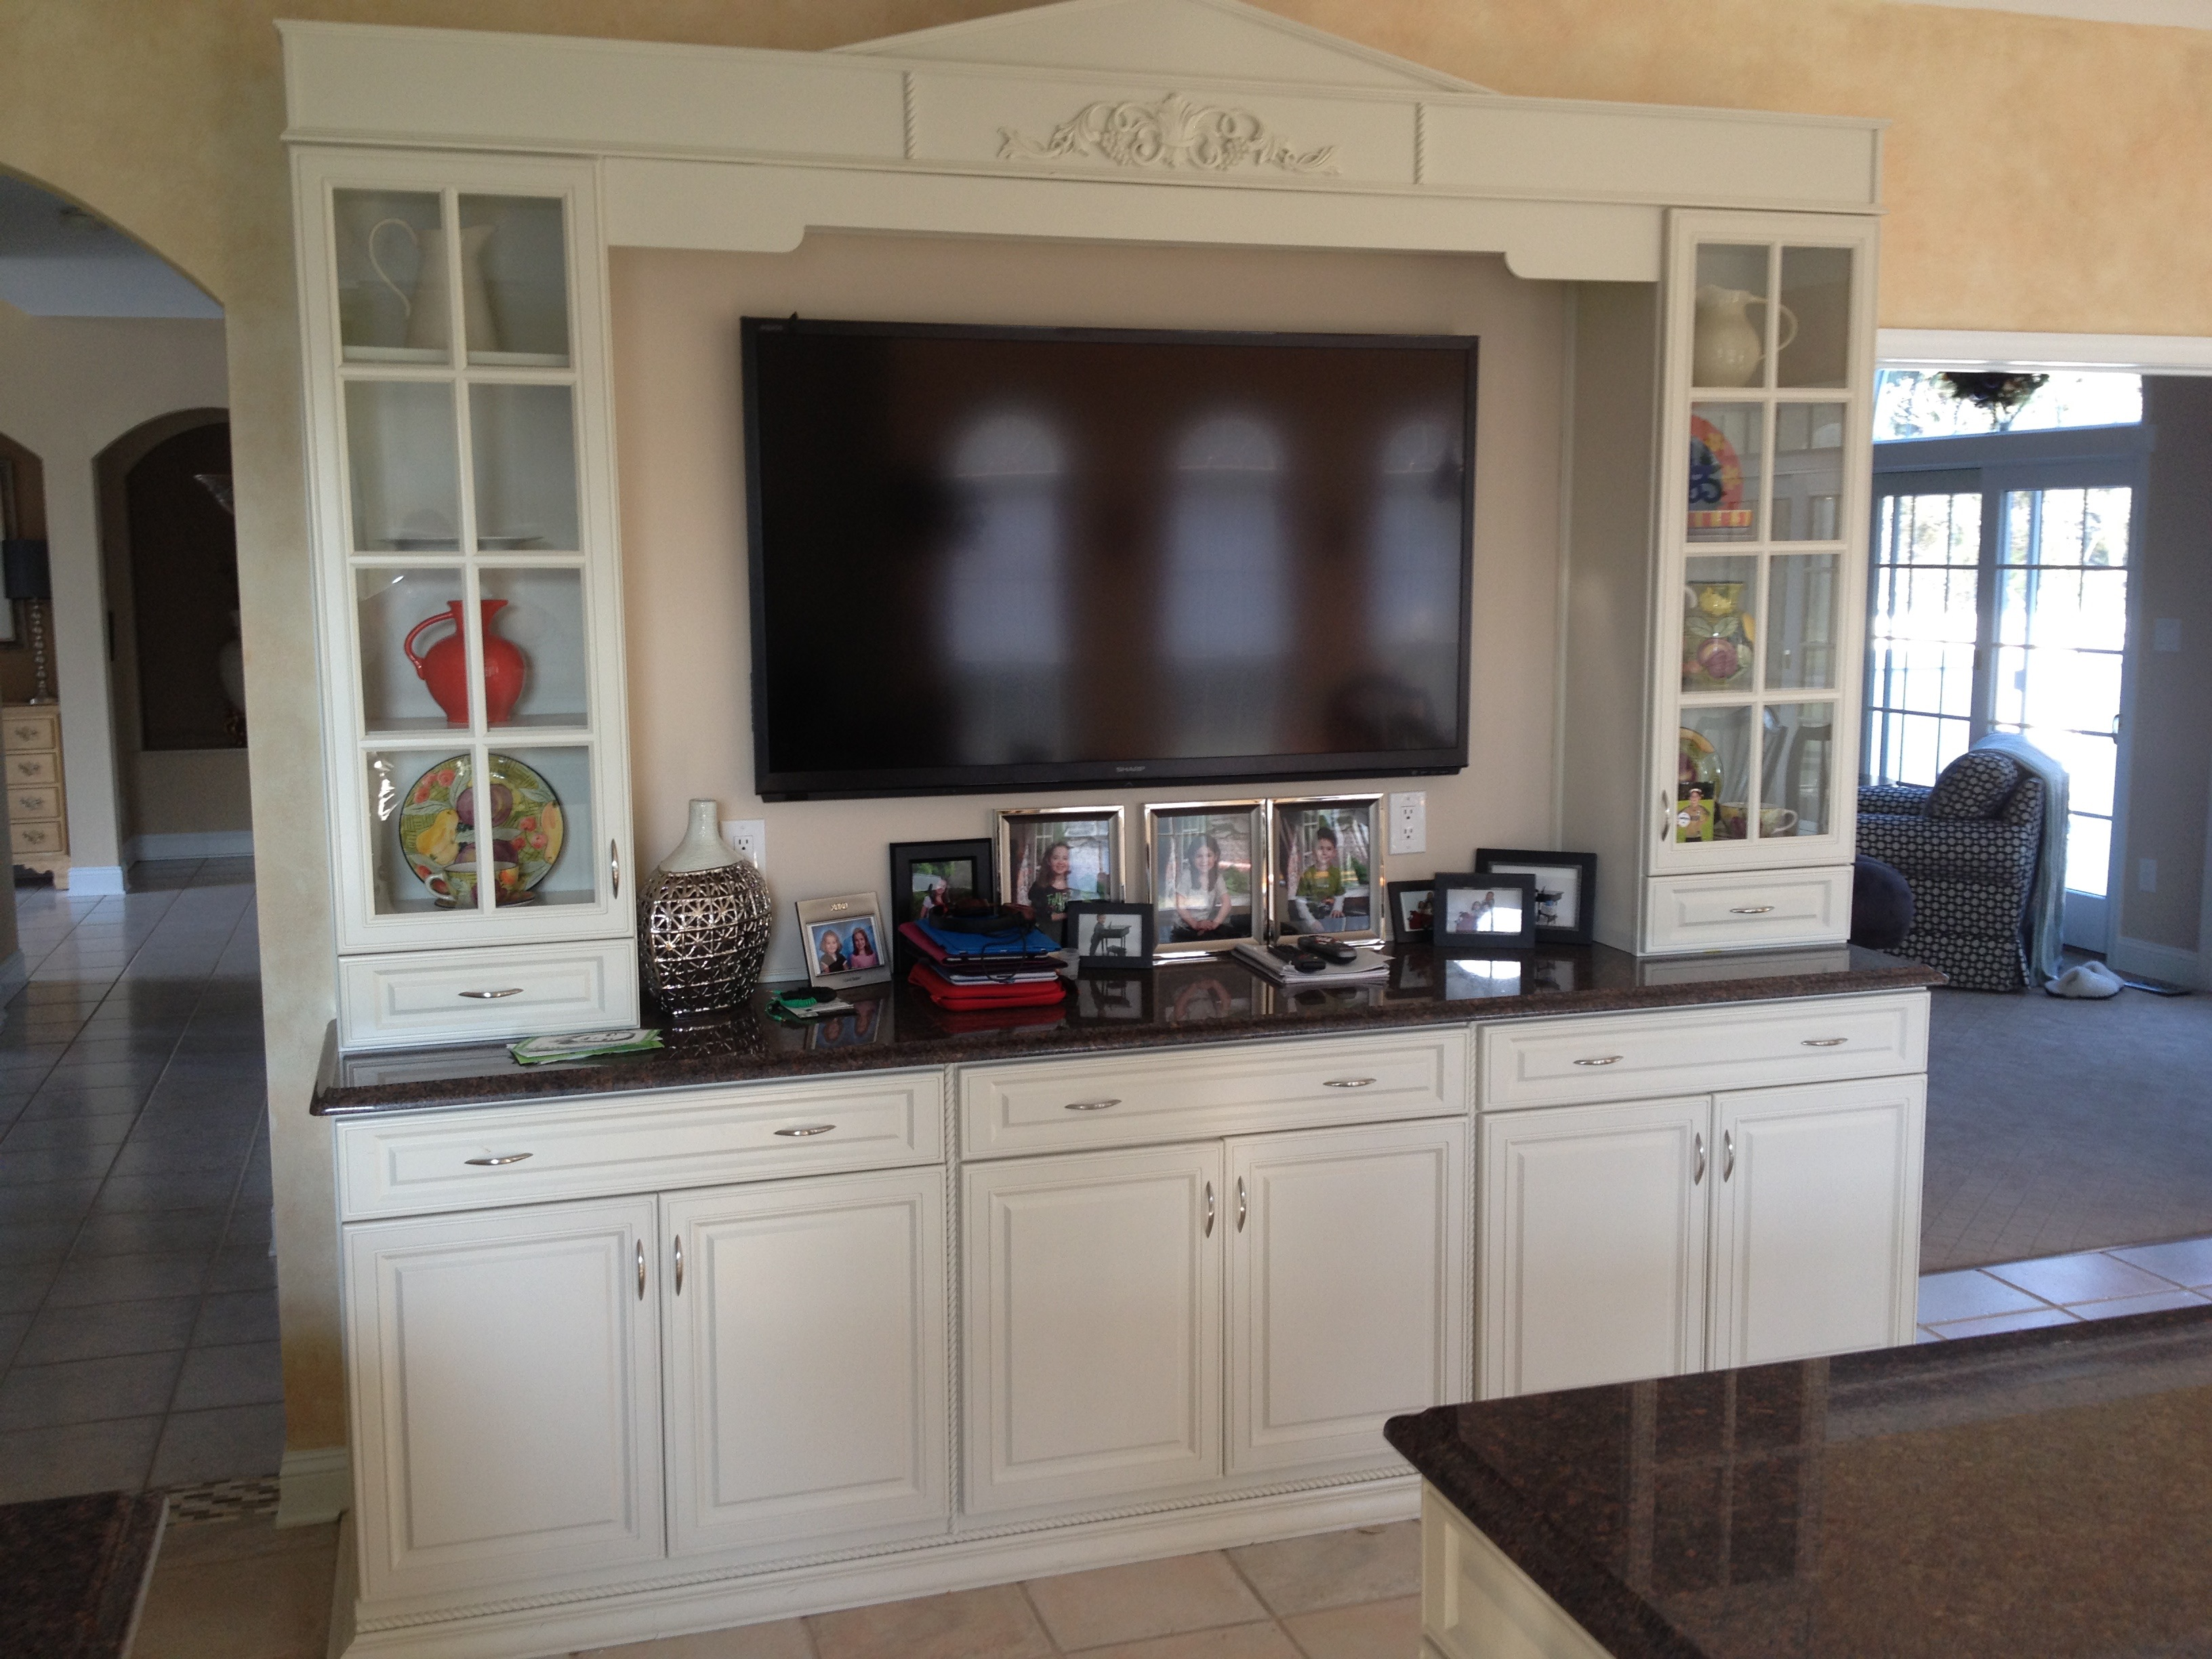 Kitchen Remodel in Sewell Located in South Jersey A Master